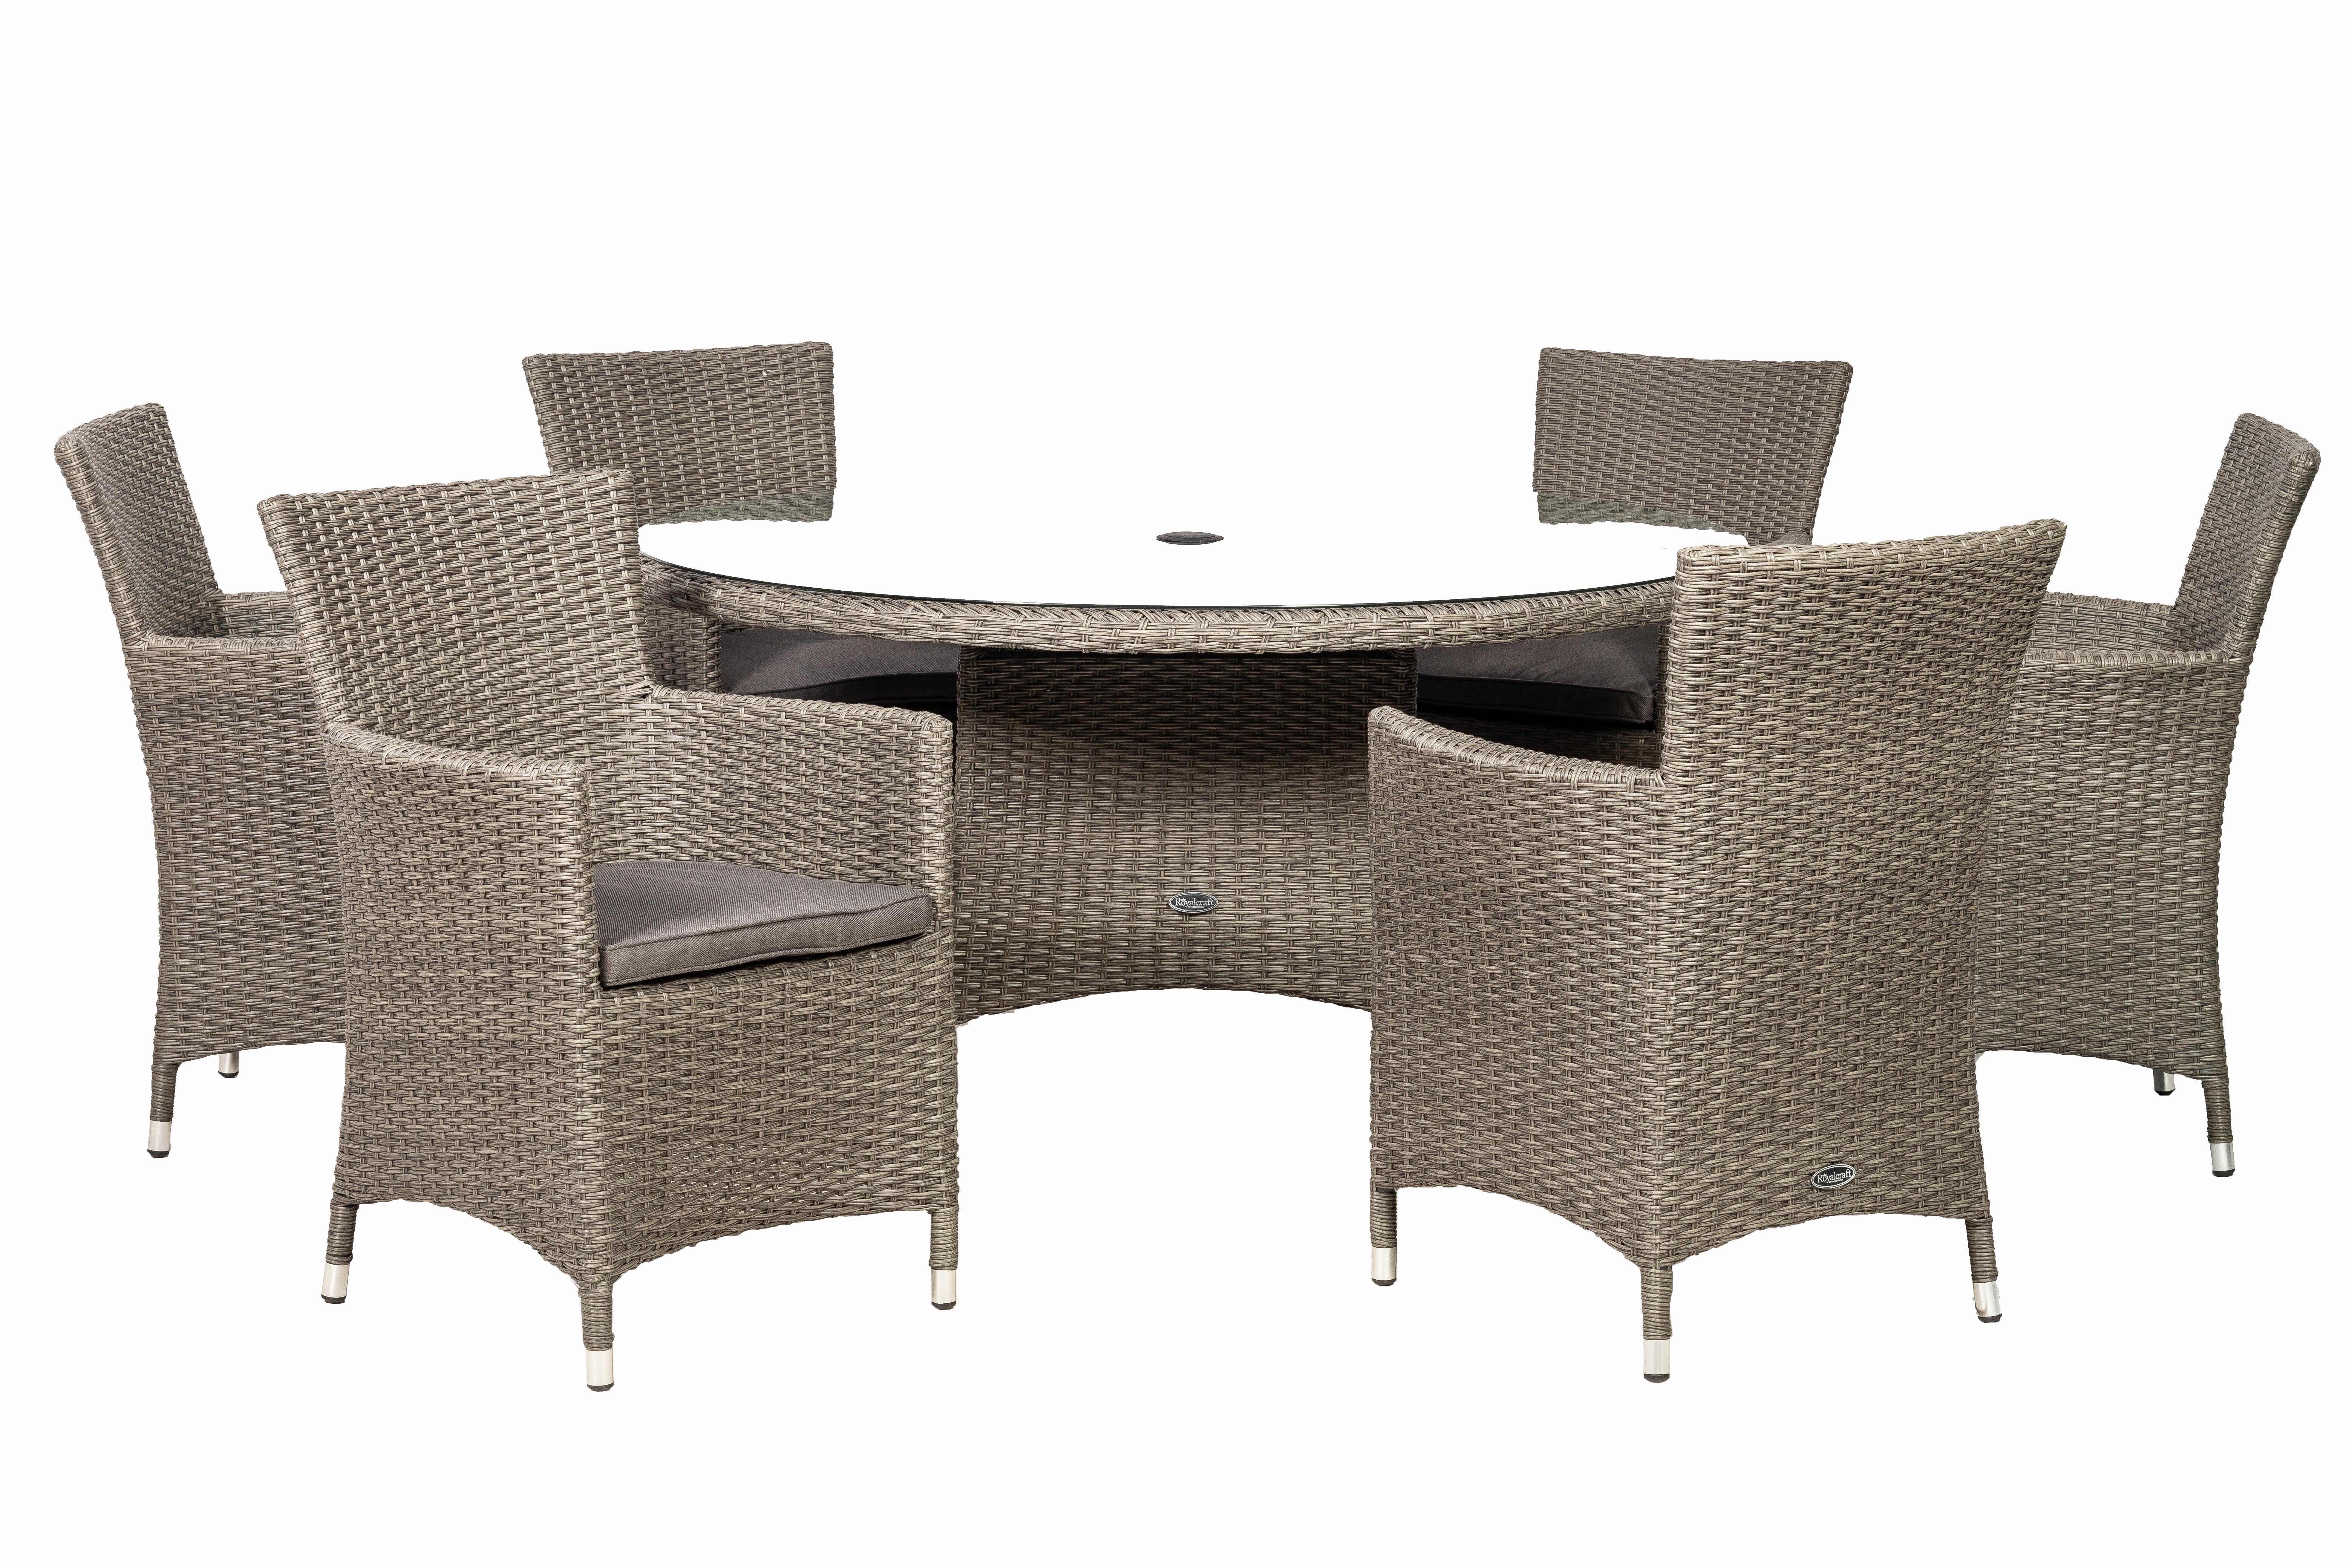 cadab58bf9 Sol 72 Outdoor Termonde 6 Seater Dining Set with Cushions & Reviews |  Wayfair.co.uk